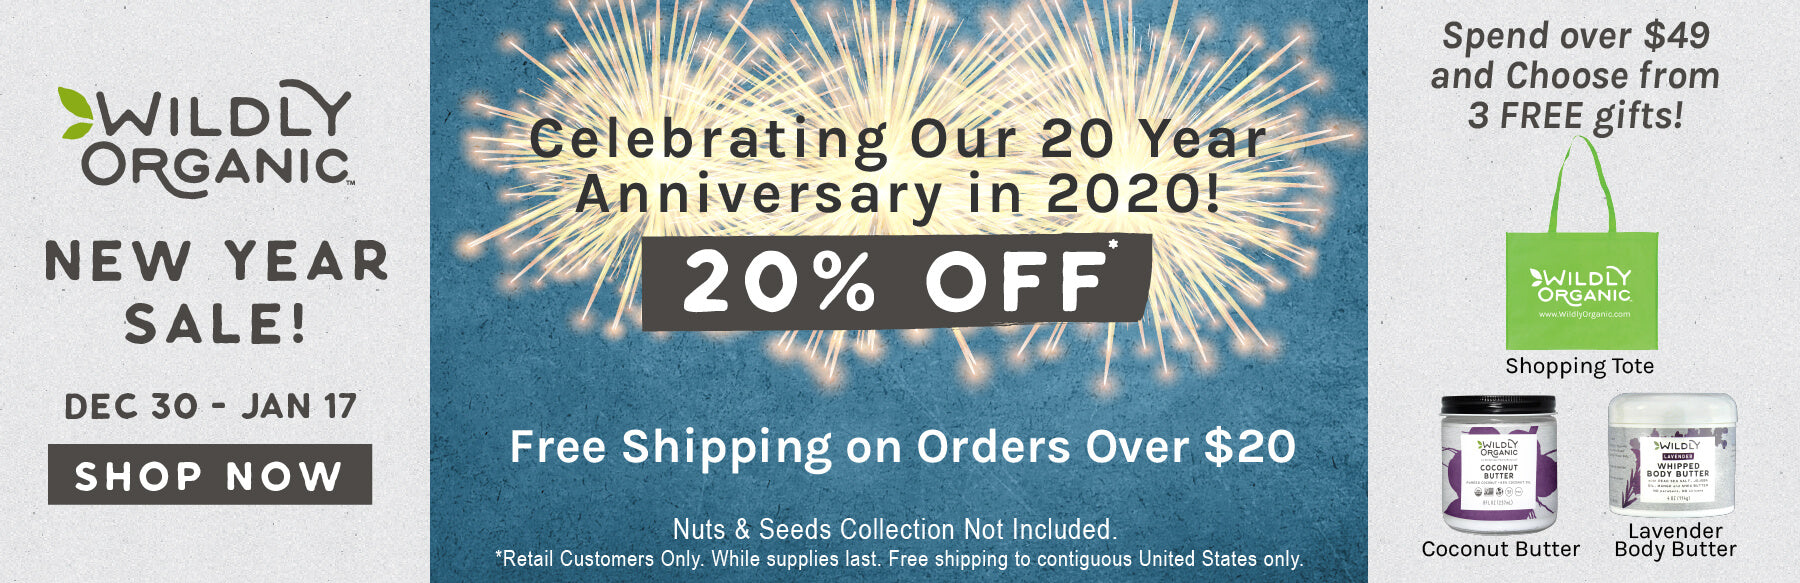 A Wildly Organic New Year Sale!